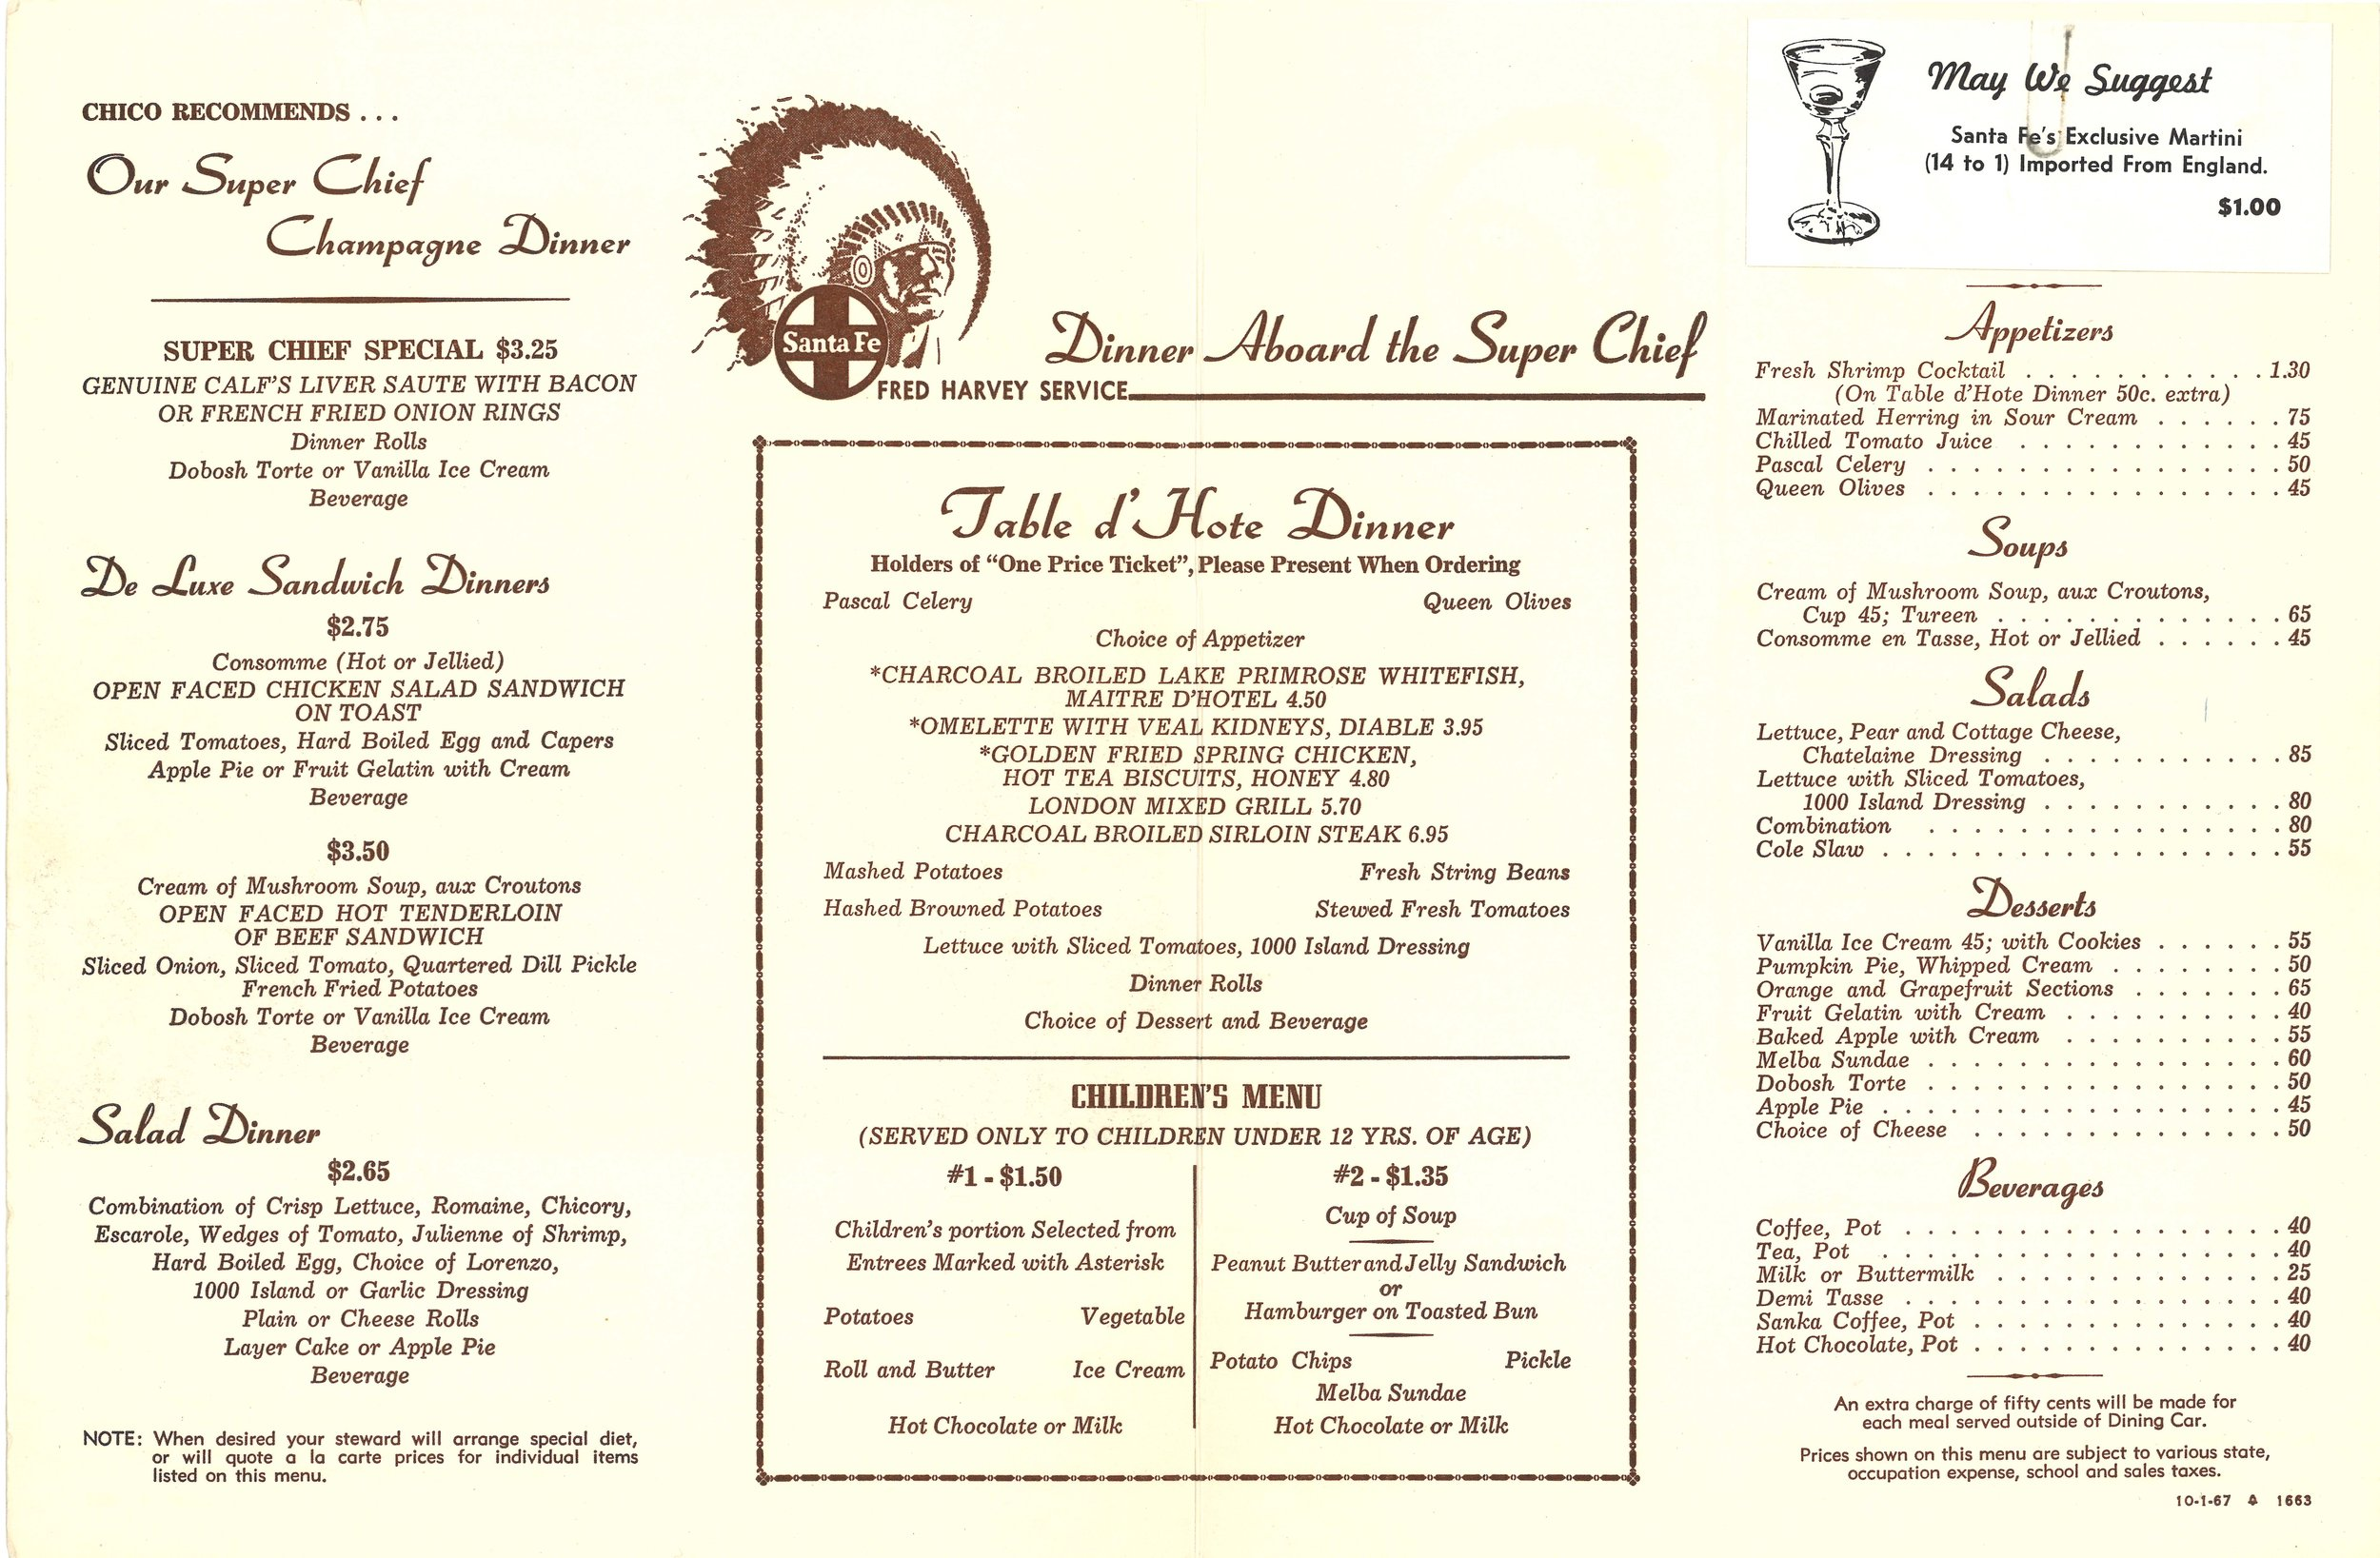 Santa Fe Grand Canyon Dinner Menu_002_sm.jpg